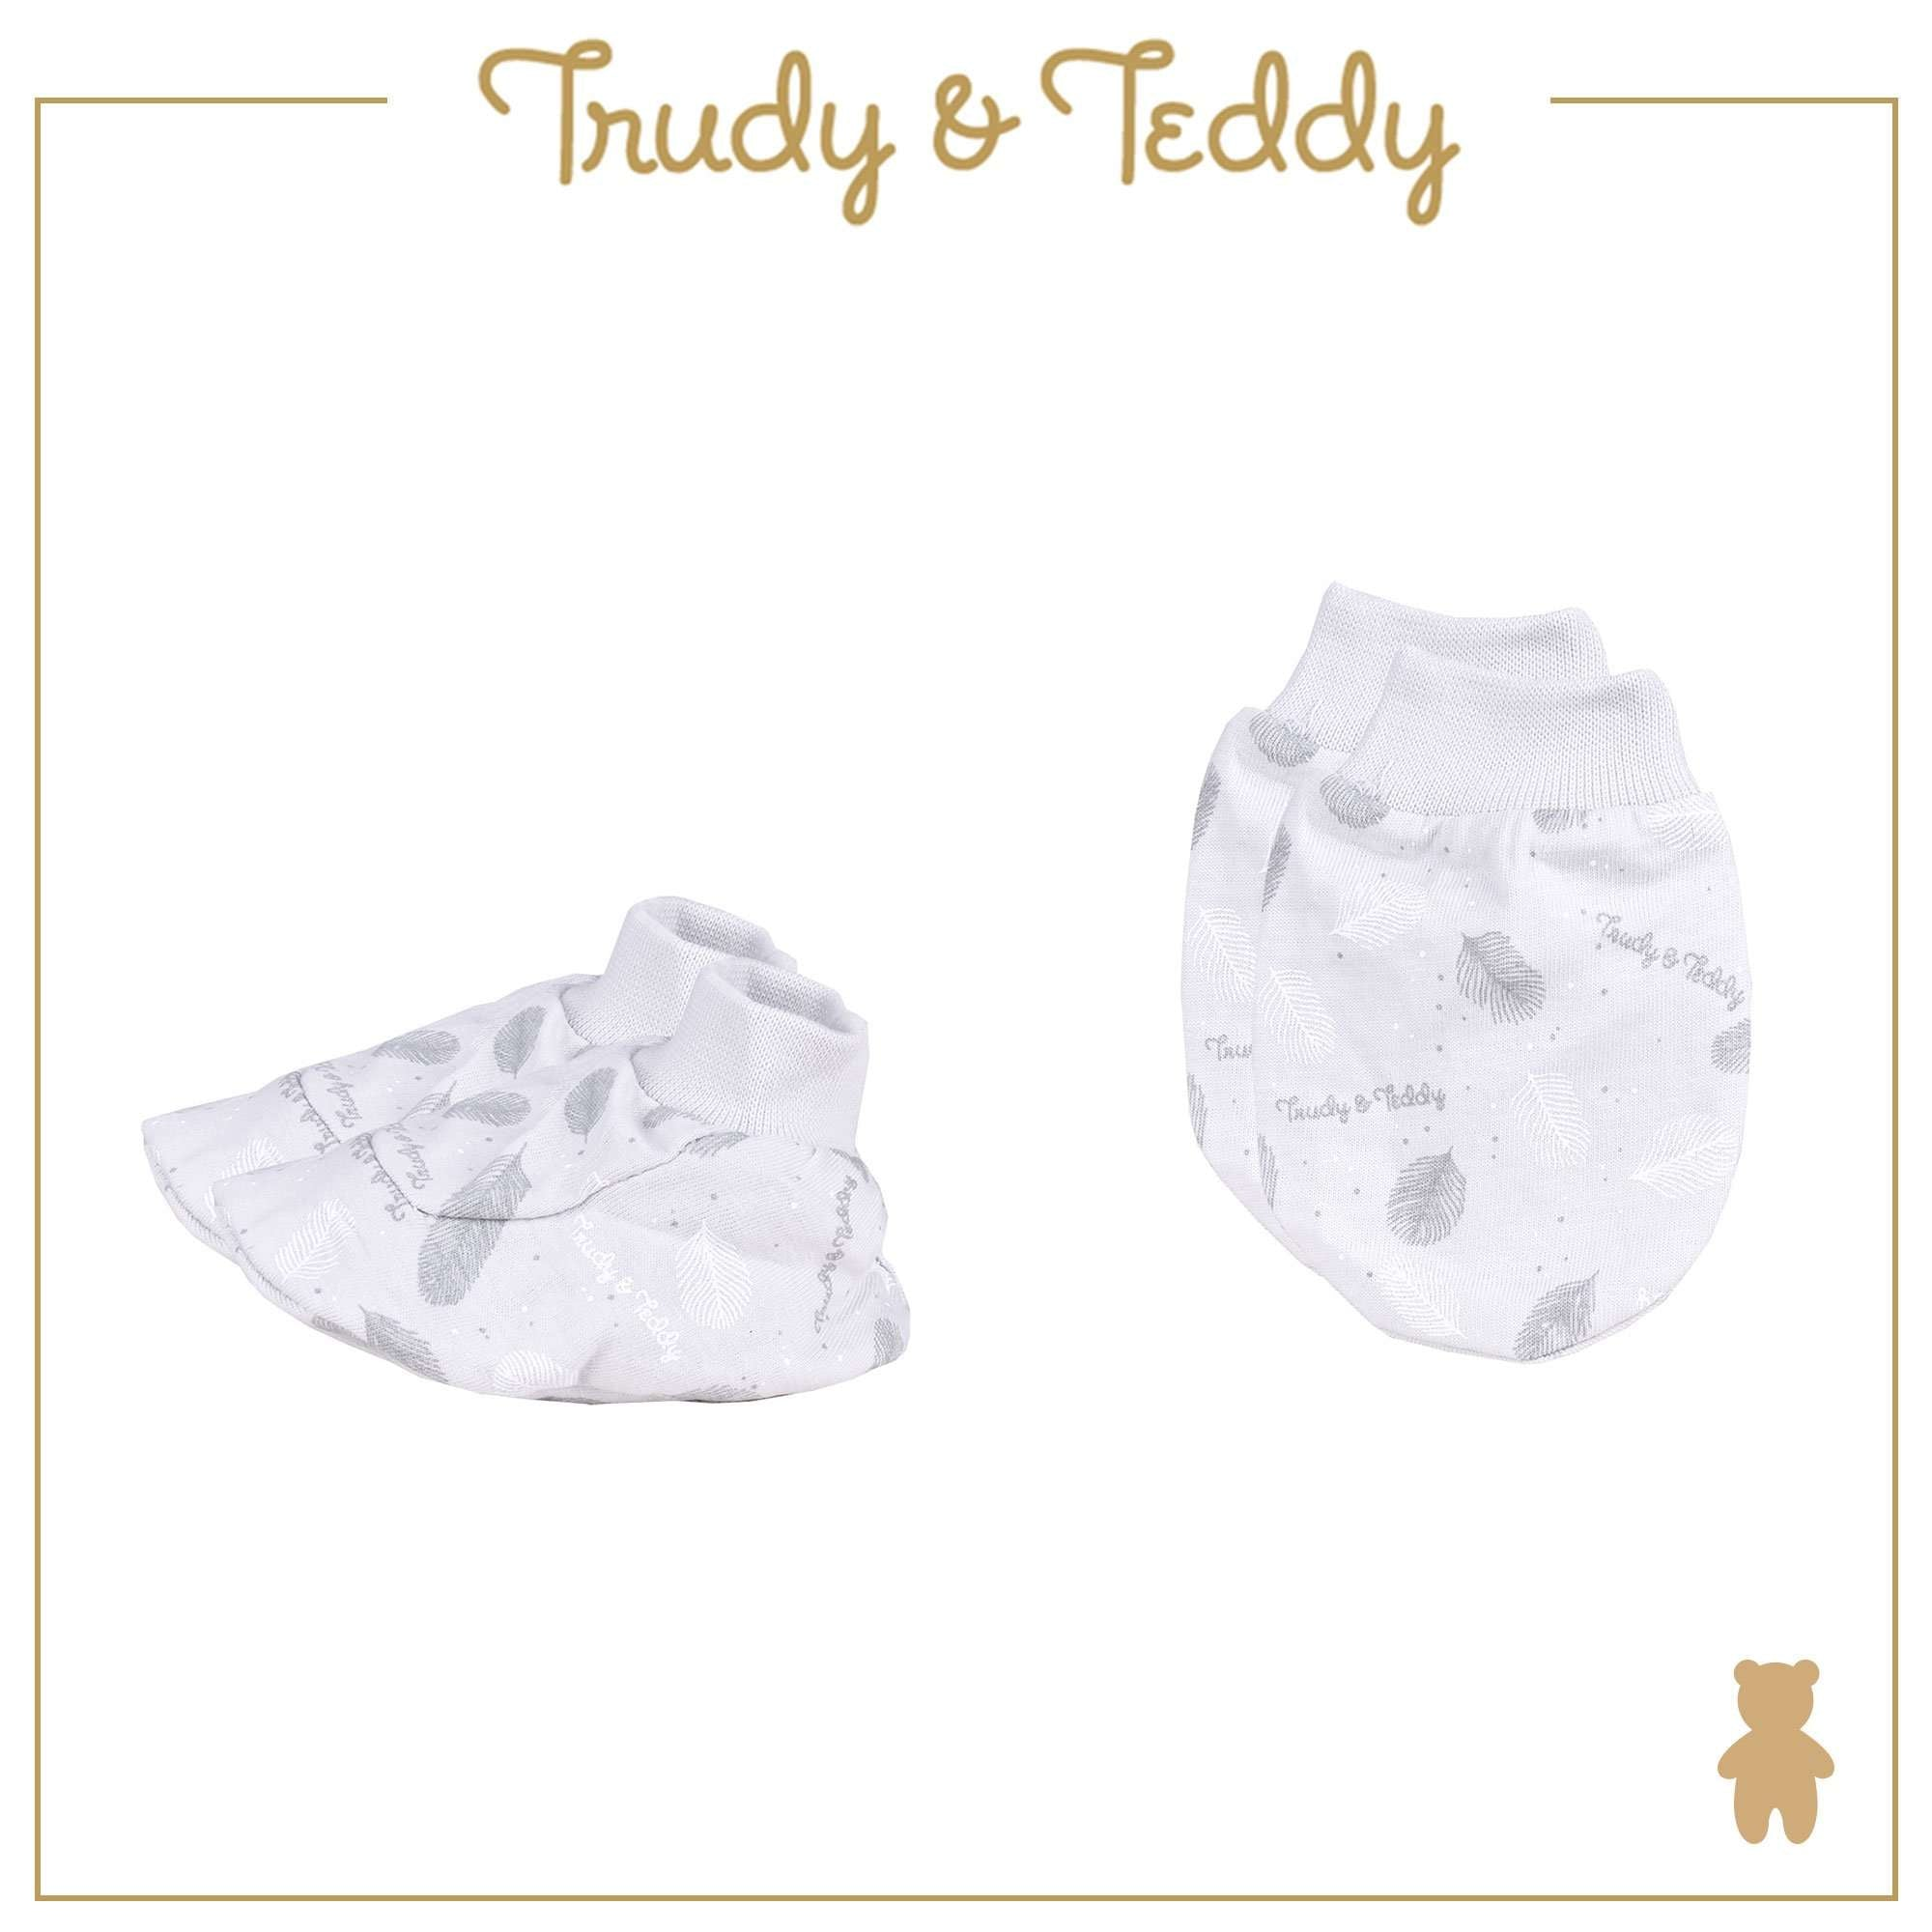 Trudy & Teddy Baby Boy Mitten & Booties 820029-701 : Buy Trudy & Teddy online at CMG.MY